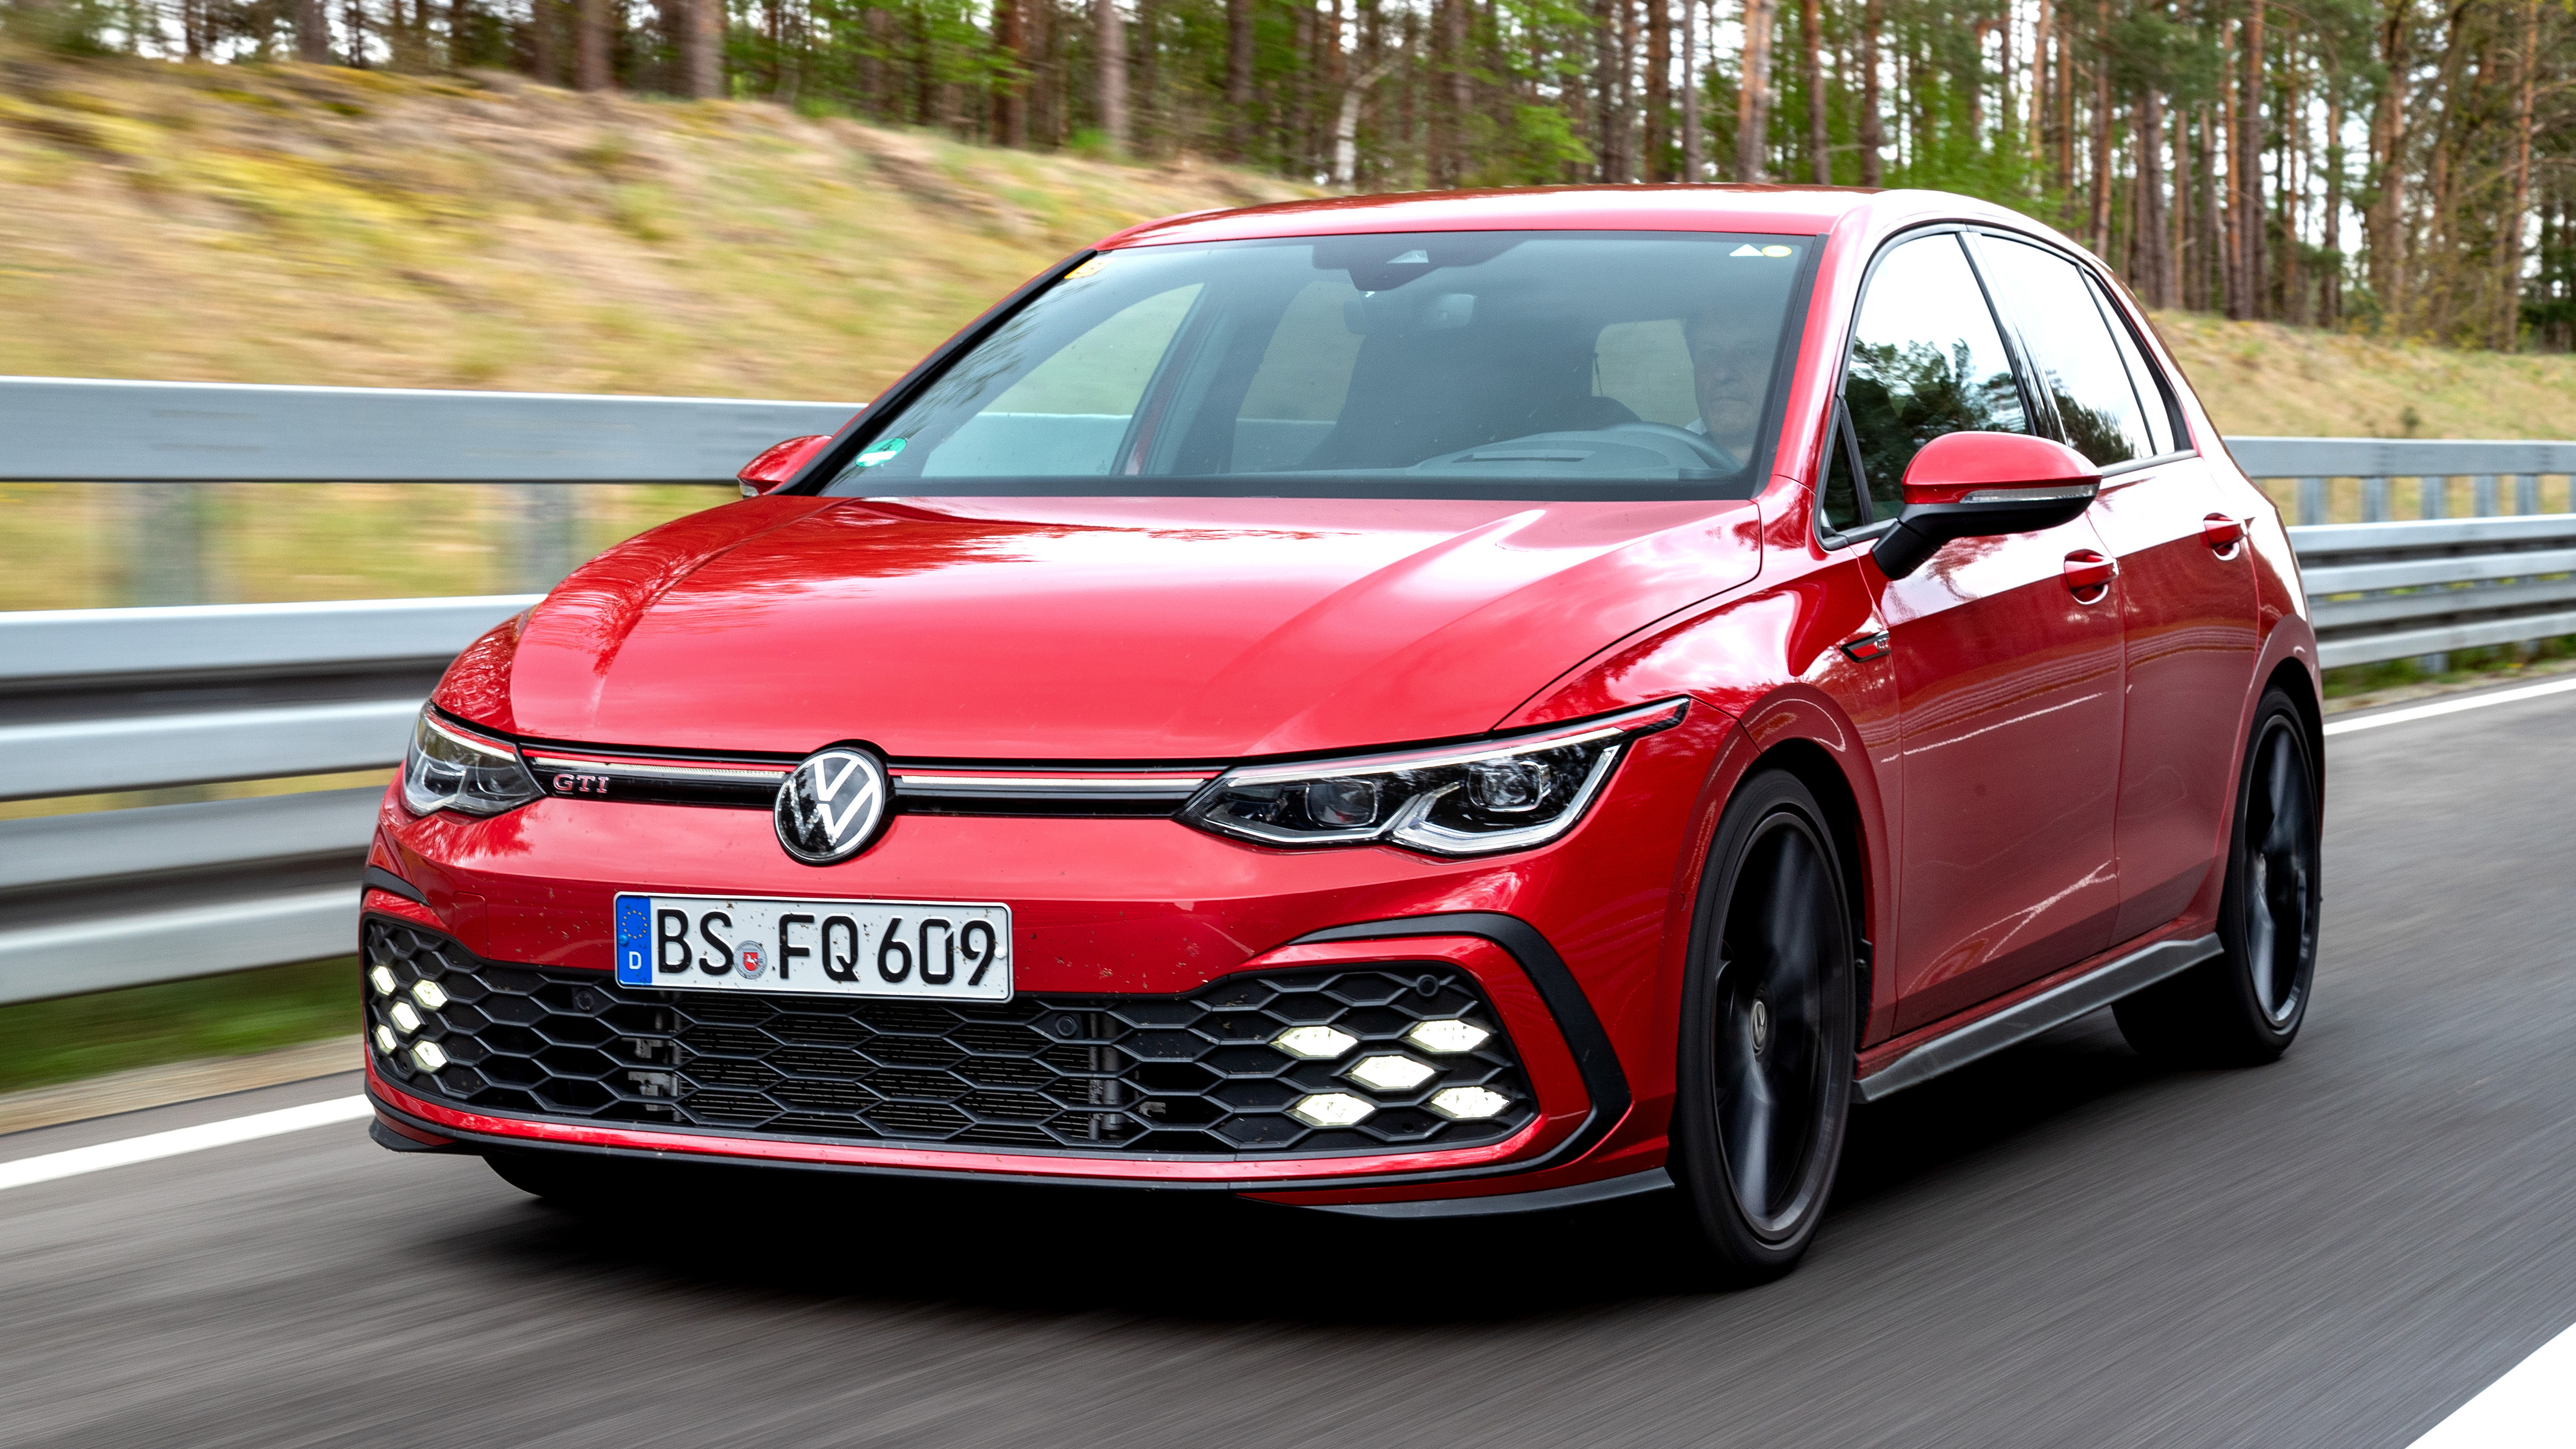 2020 Volkswagen Golf Gti Prices Specs And Release Date Carbuyer